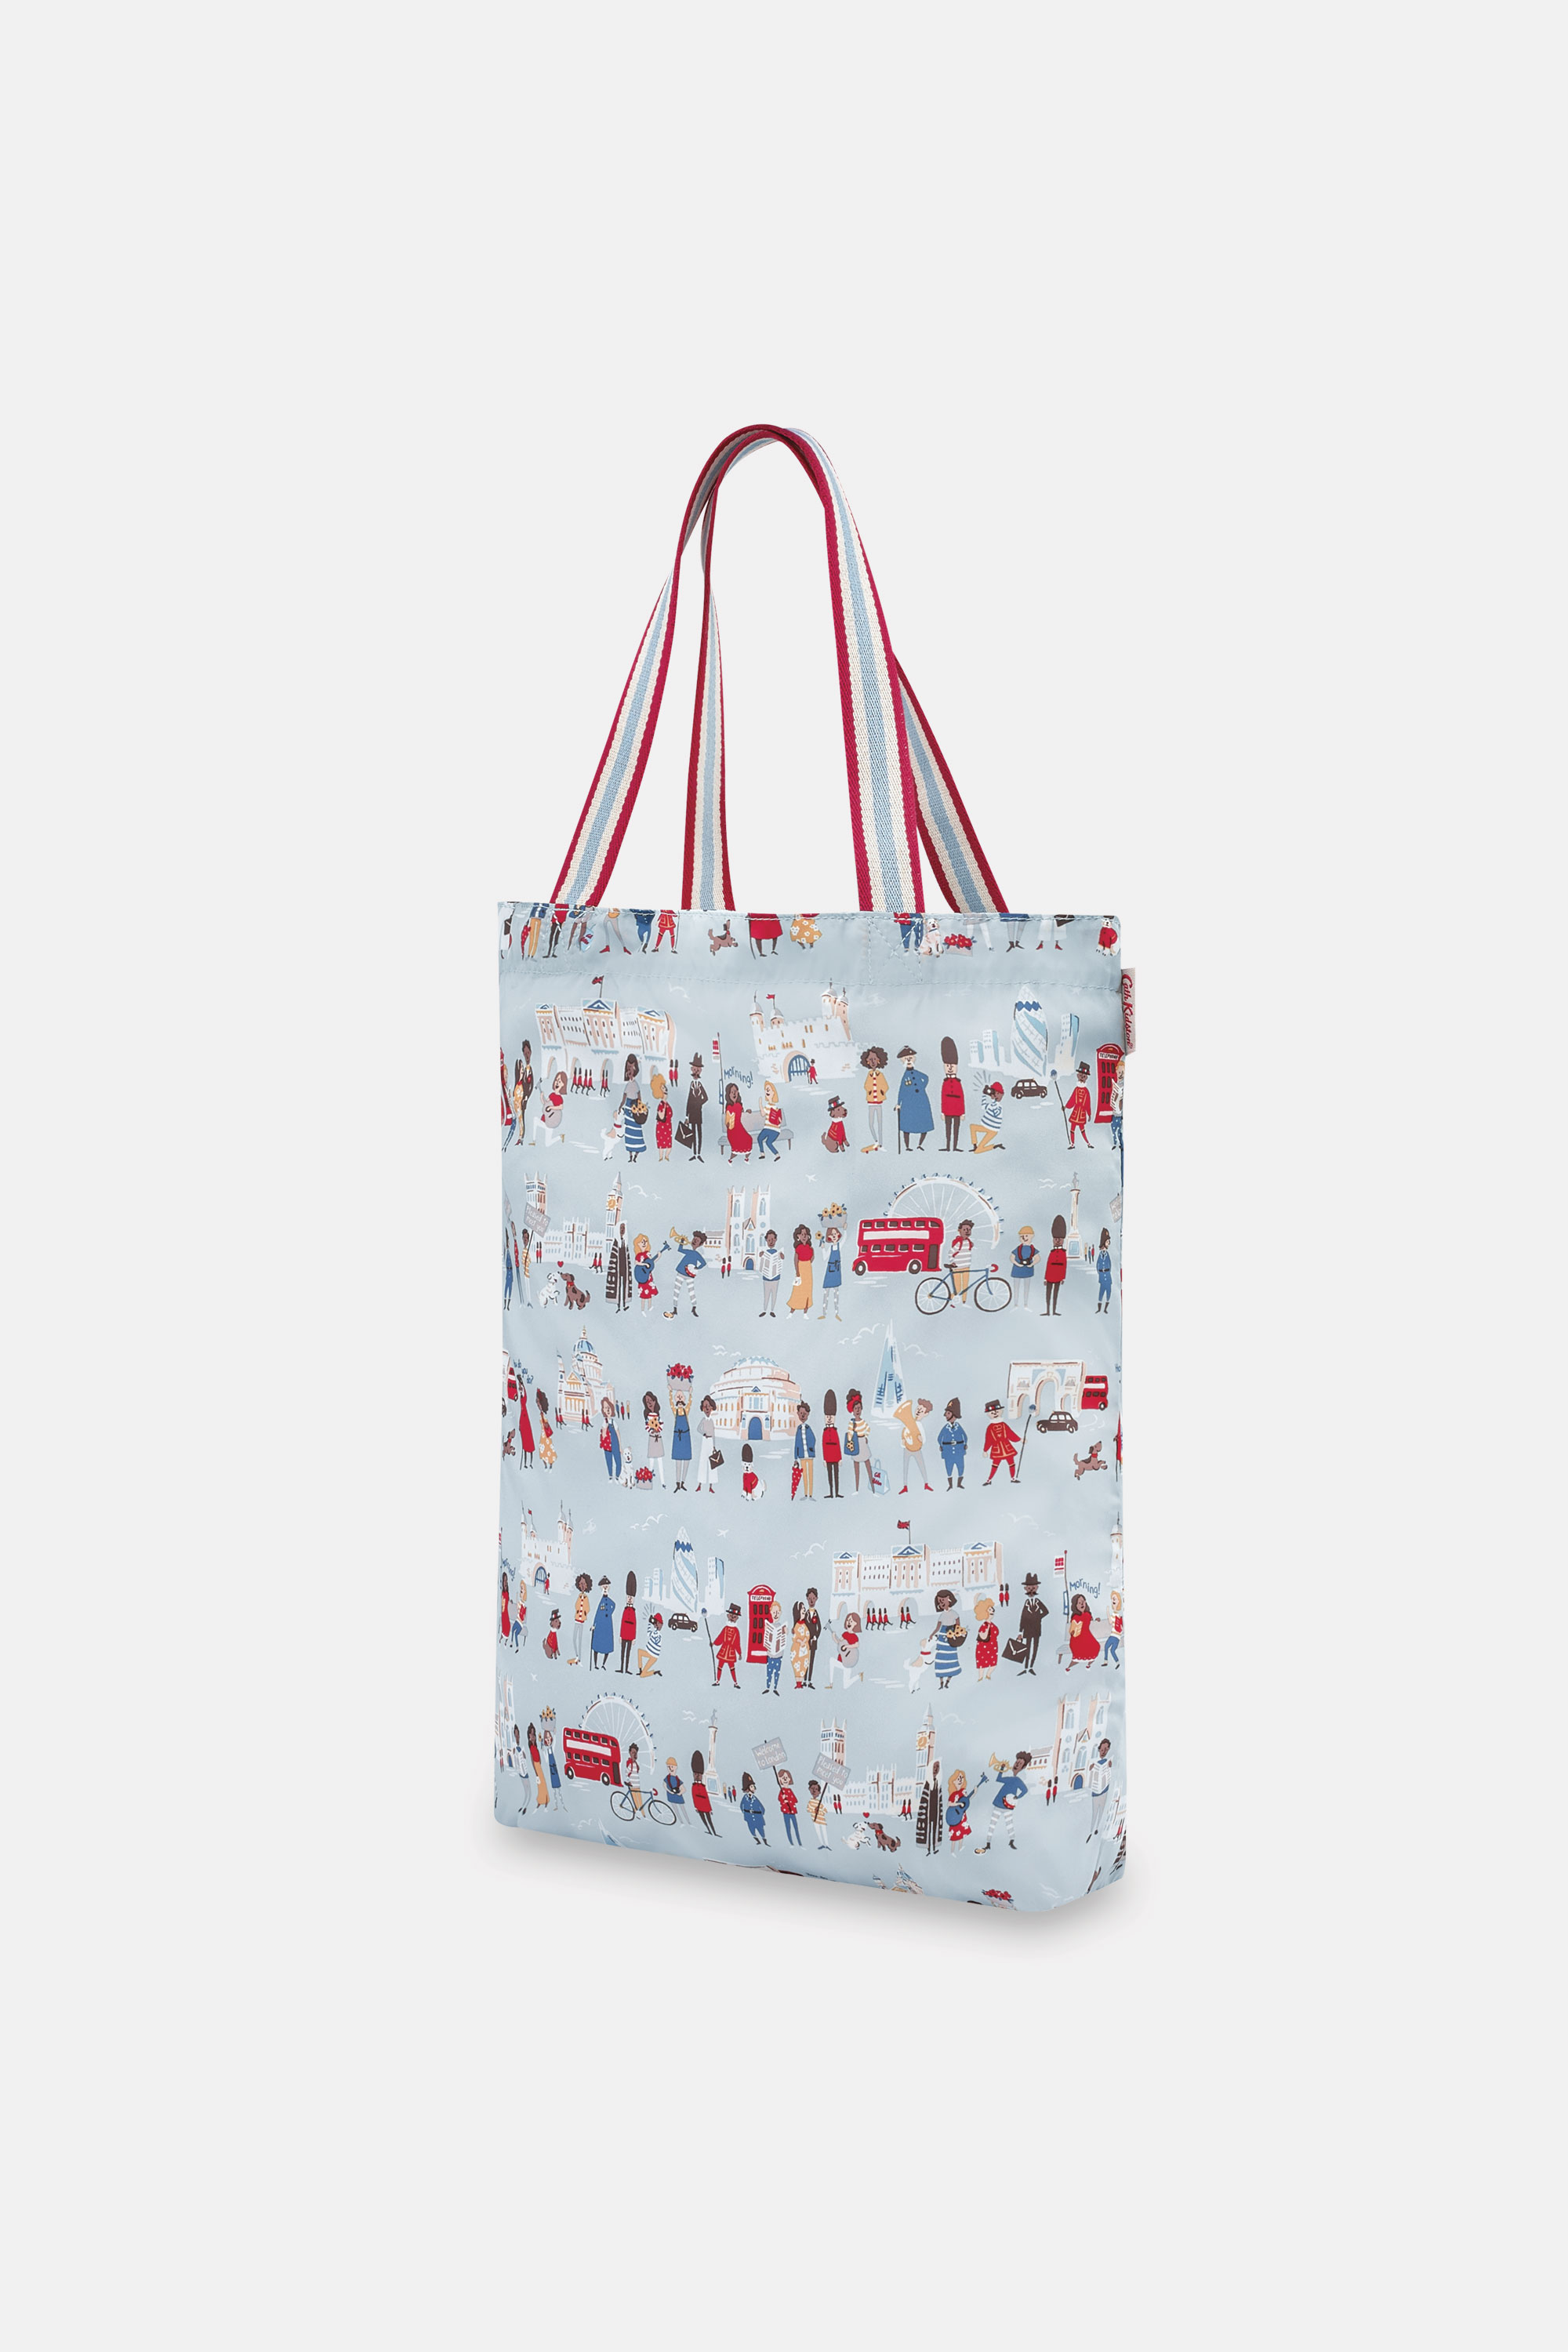 Cath Kidston London People Small Foldaway Tote in Powder Blue